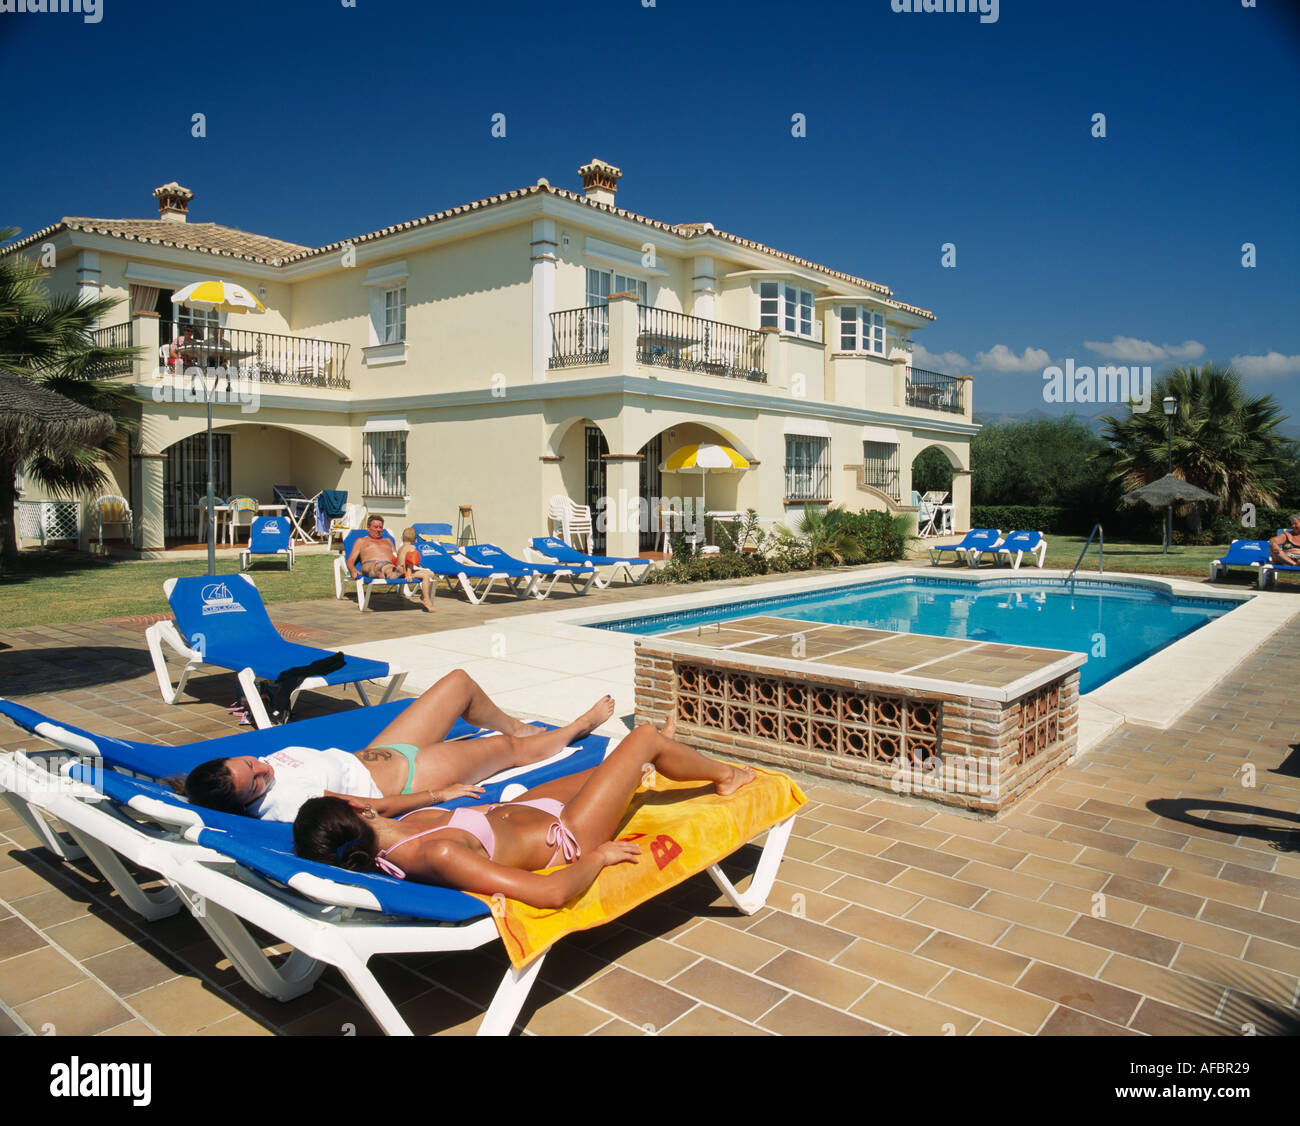 Hotel pool with people  People sunbathing on loungers on terrace beside swimming pool in ...